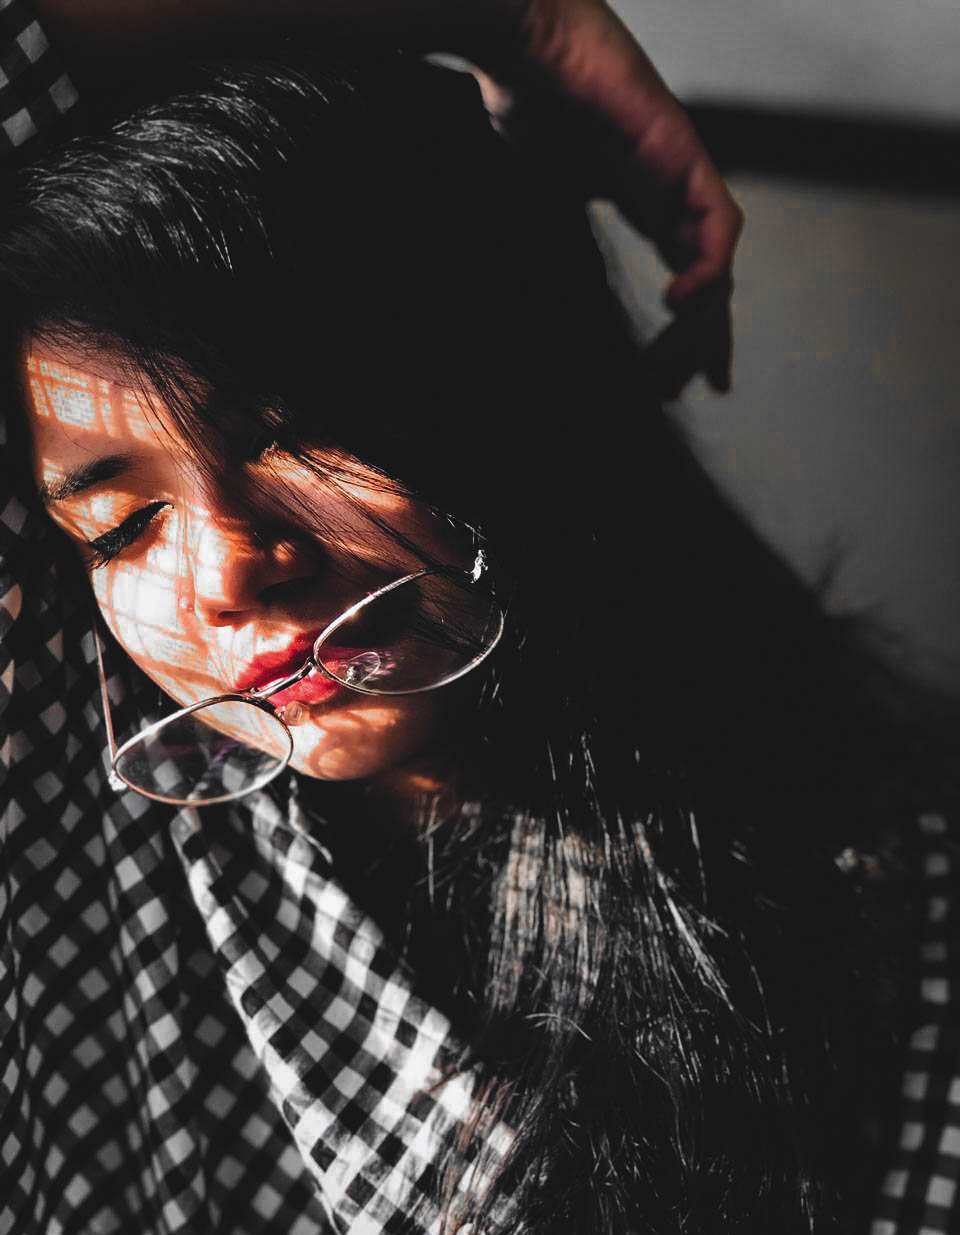 Sun kissed – Indian Girl with Glasses